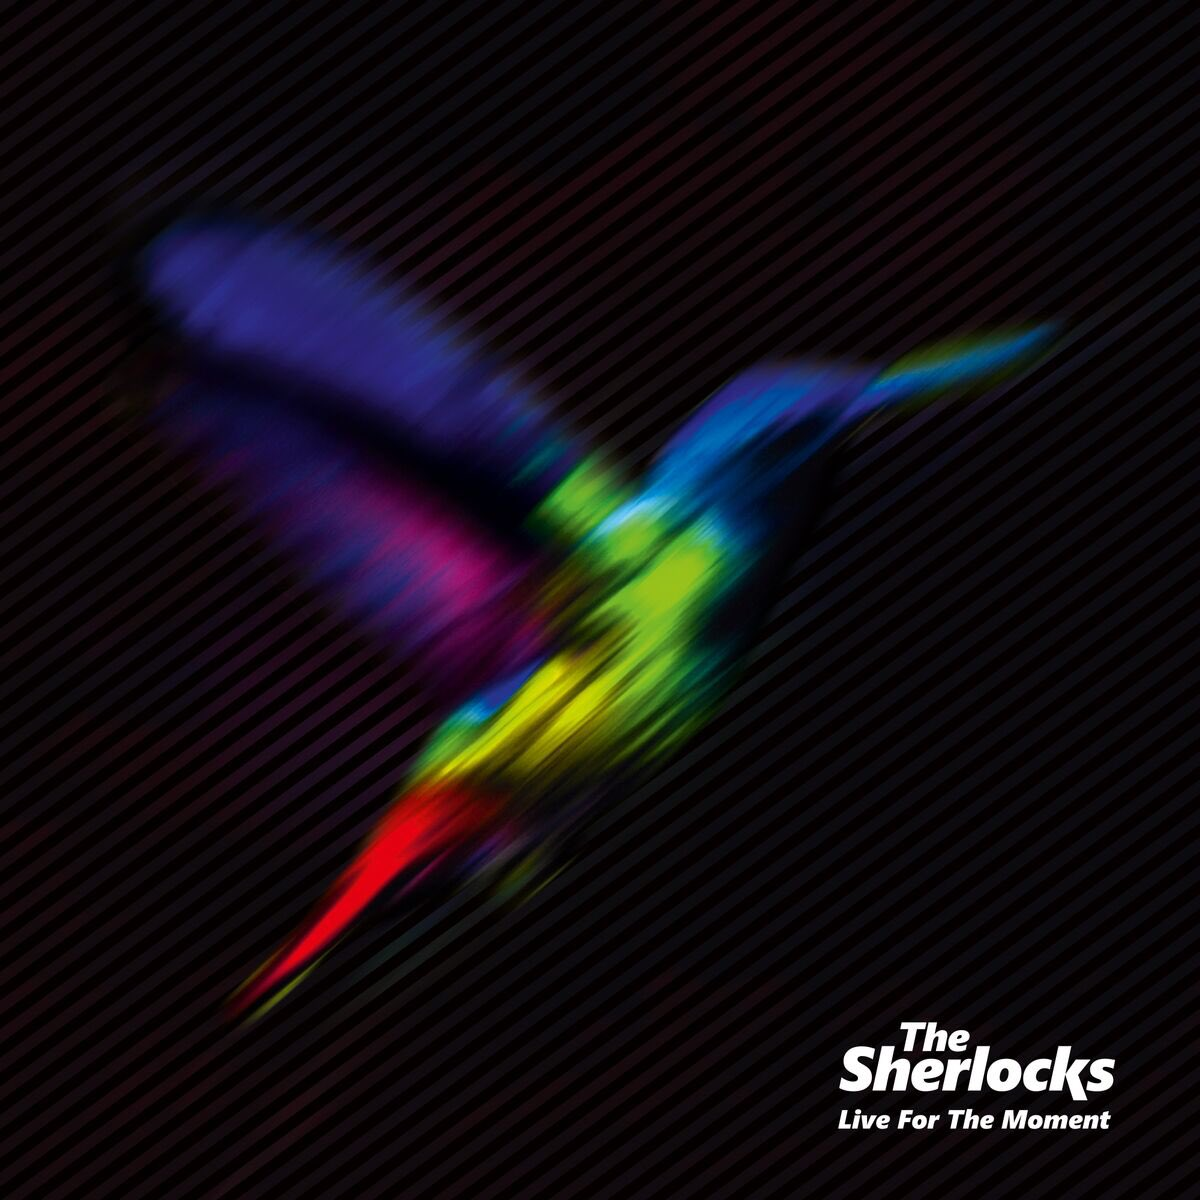 Album Review: The Sherlocks - 'Live For The Moment